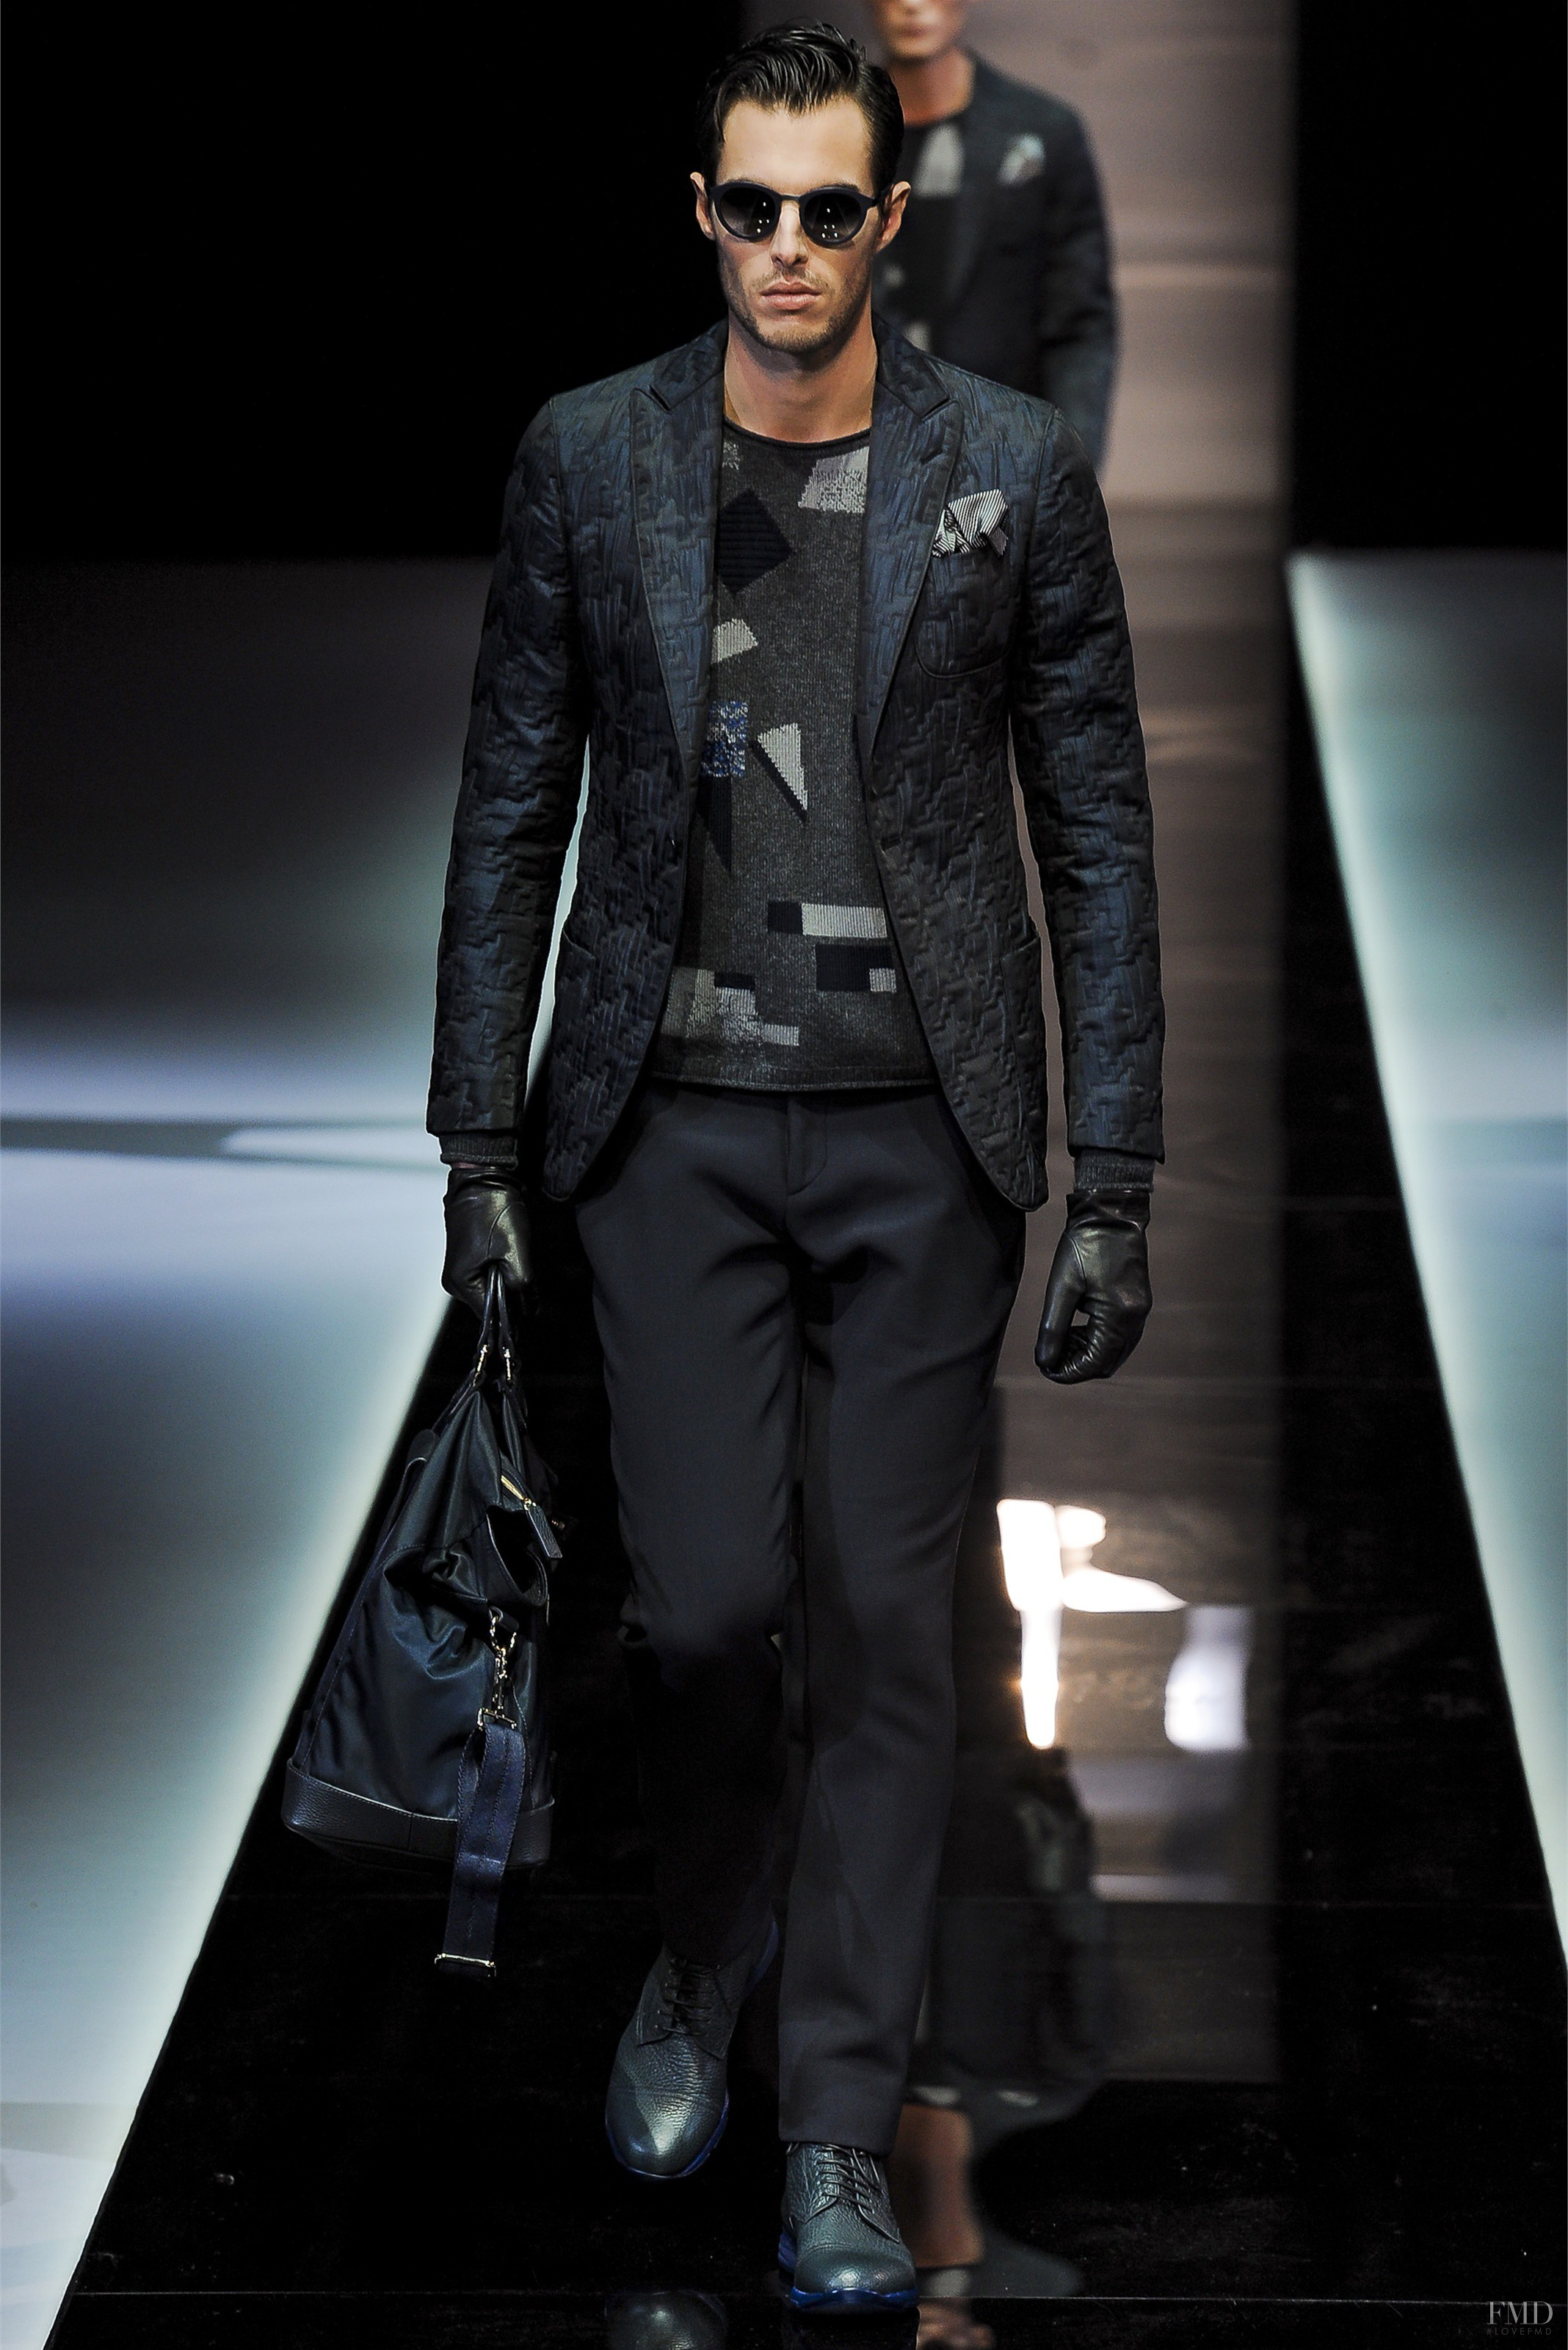 Armani fashion for men 69